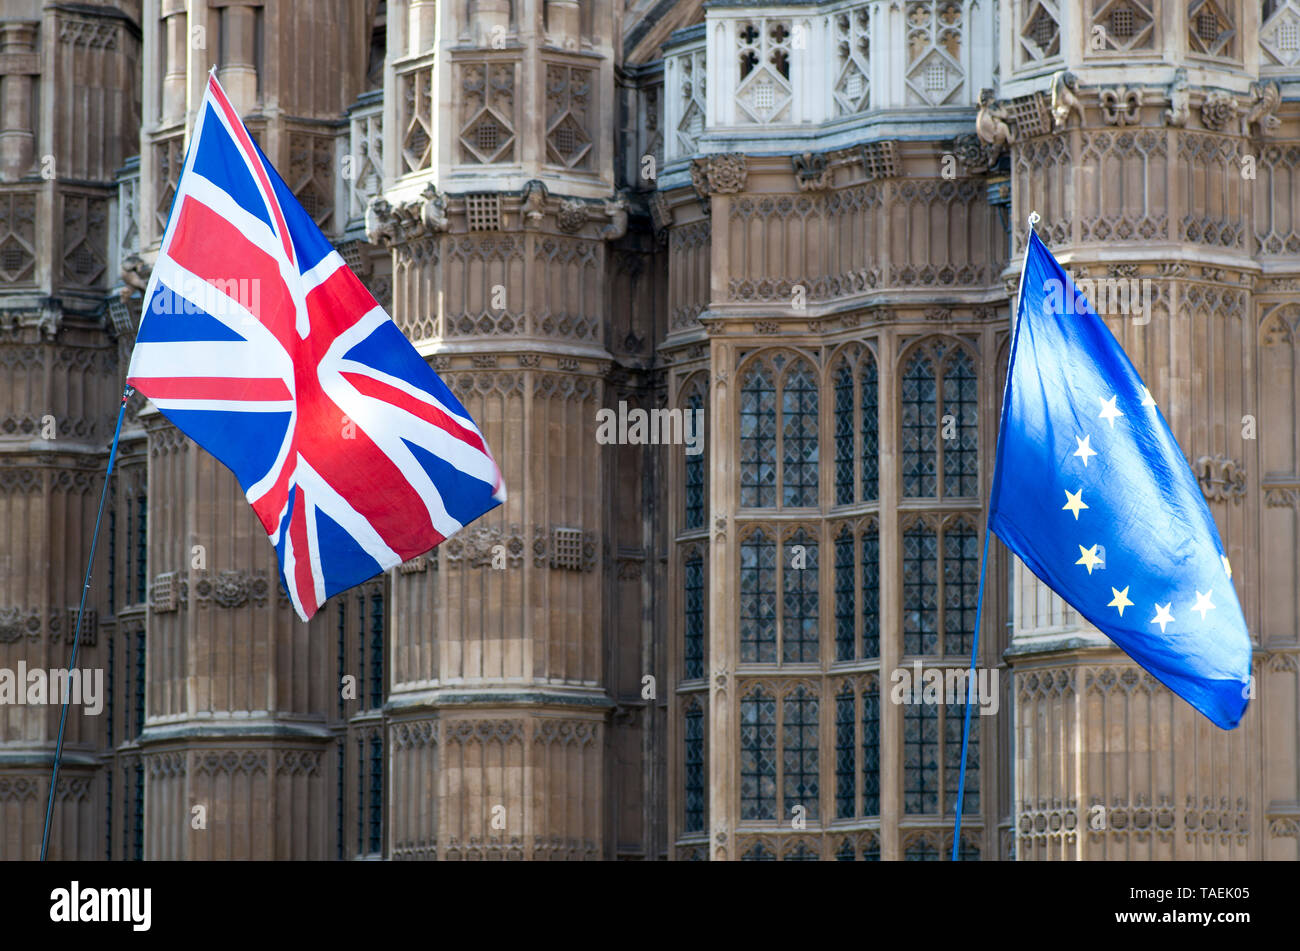 London, UK. 23 April 2019. Union jack and the EU flag flutter near parliament on European election day in the UK, Westminster, London. Lady Chapel of Westminster Cathedral is in the background.  © Stuart Walden/ Alamy - Stock Image